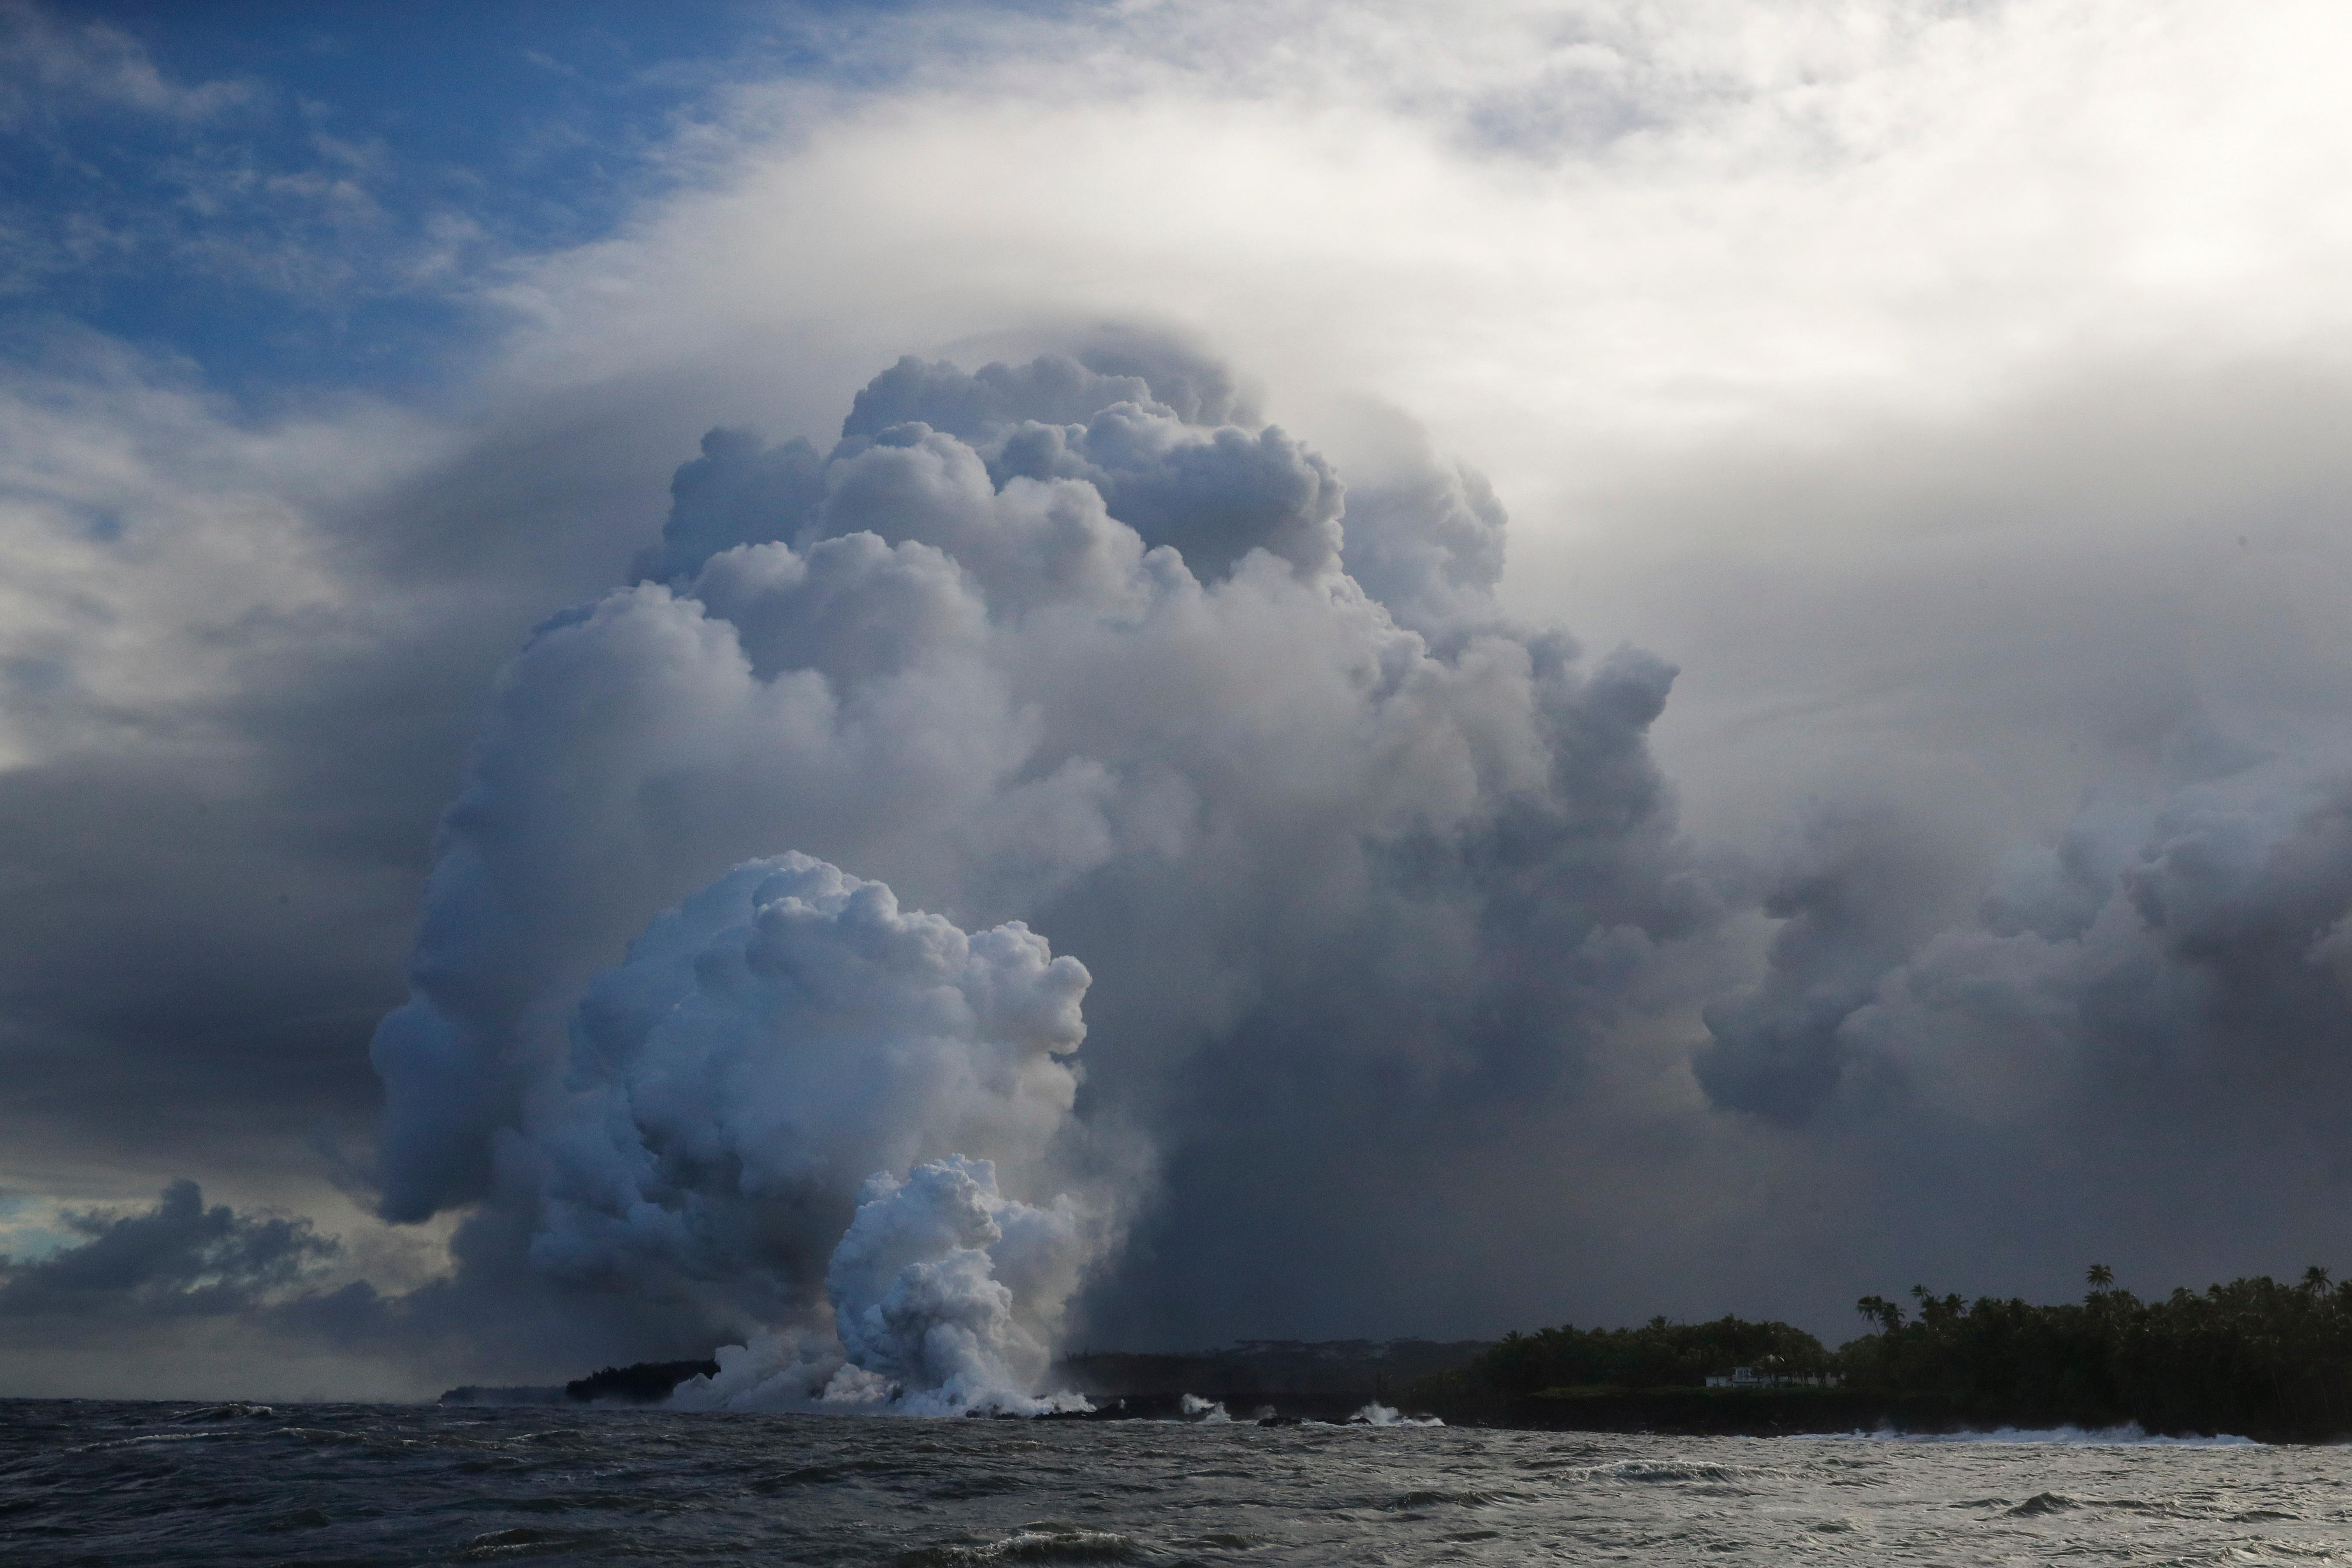 A plume of steam rises as lava enters the ocean near Pahoa, Hawaii, Sunday, May 20, 2018. Kilauea volcano that is oozing, spewing and exploding on Hawaii's Big Island has gotten more hazardous in recent days, with rivers of molten rock pouring into the ocean Sunday and flying lava causing the first major injury. (AP Photo/Jae C. Hong)